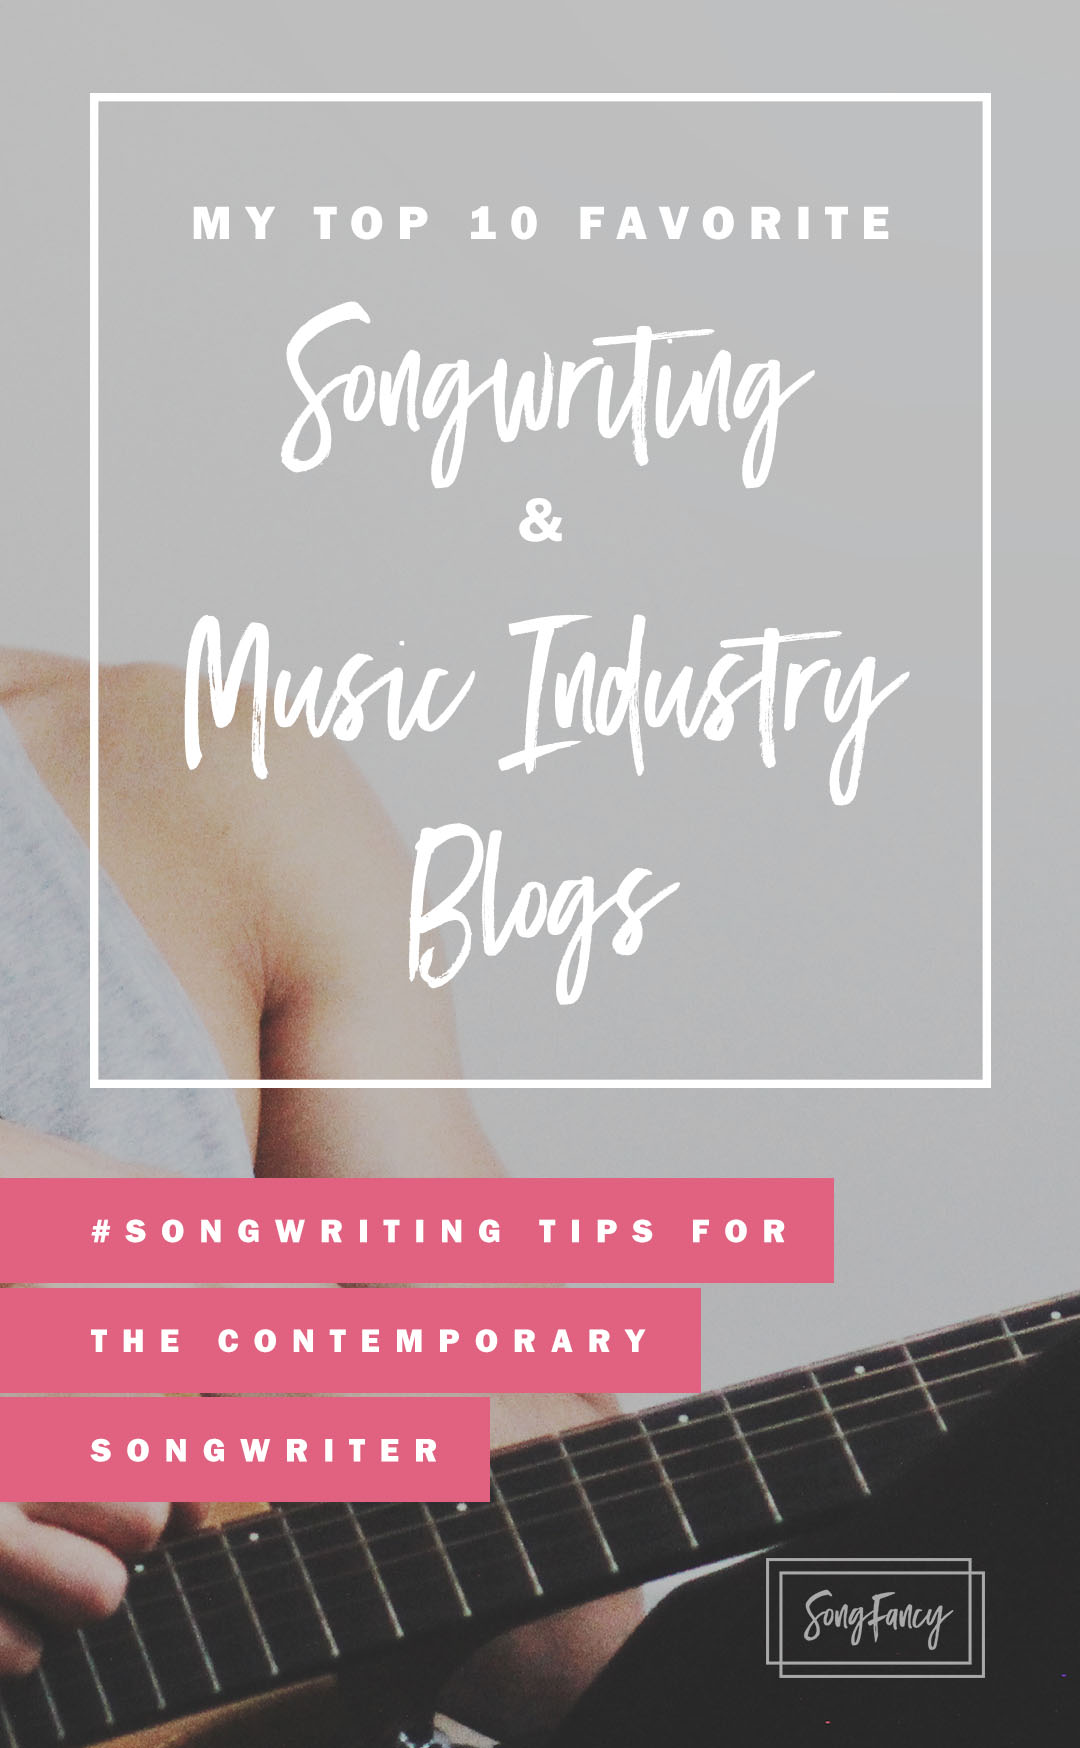 All my favorite places to read about songwriting! | Songwriting tips on SongFancy.com